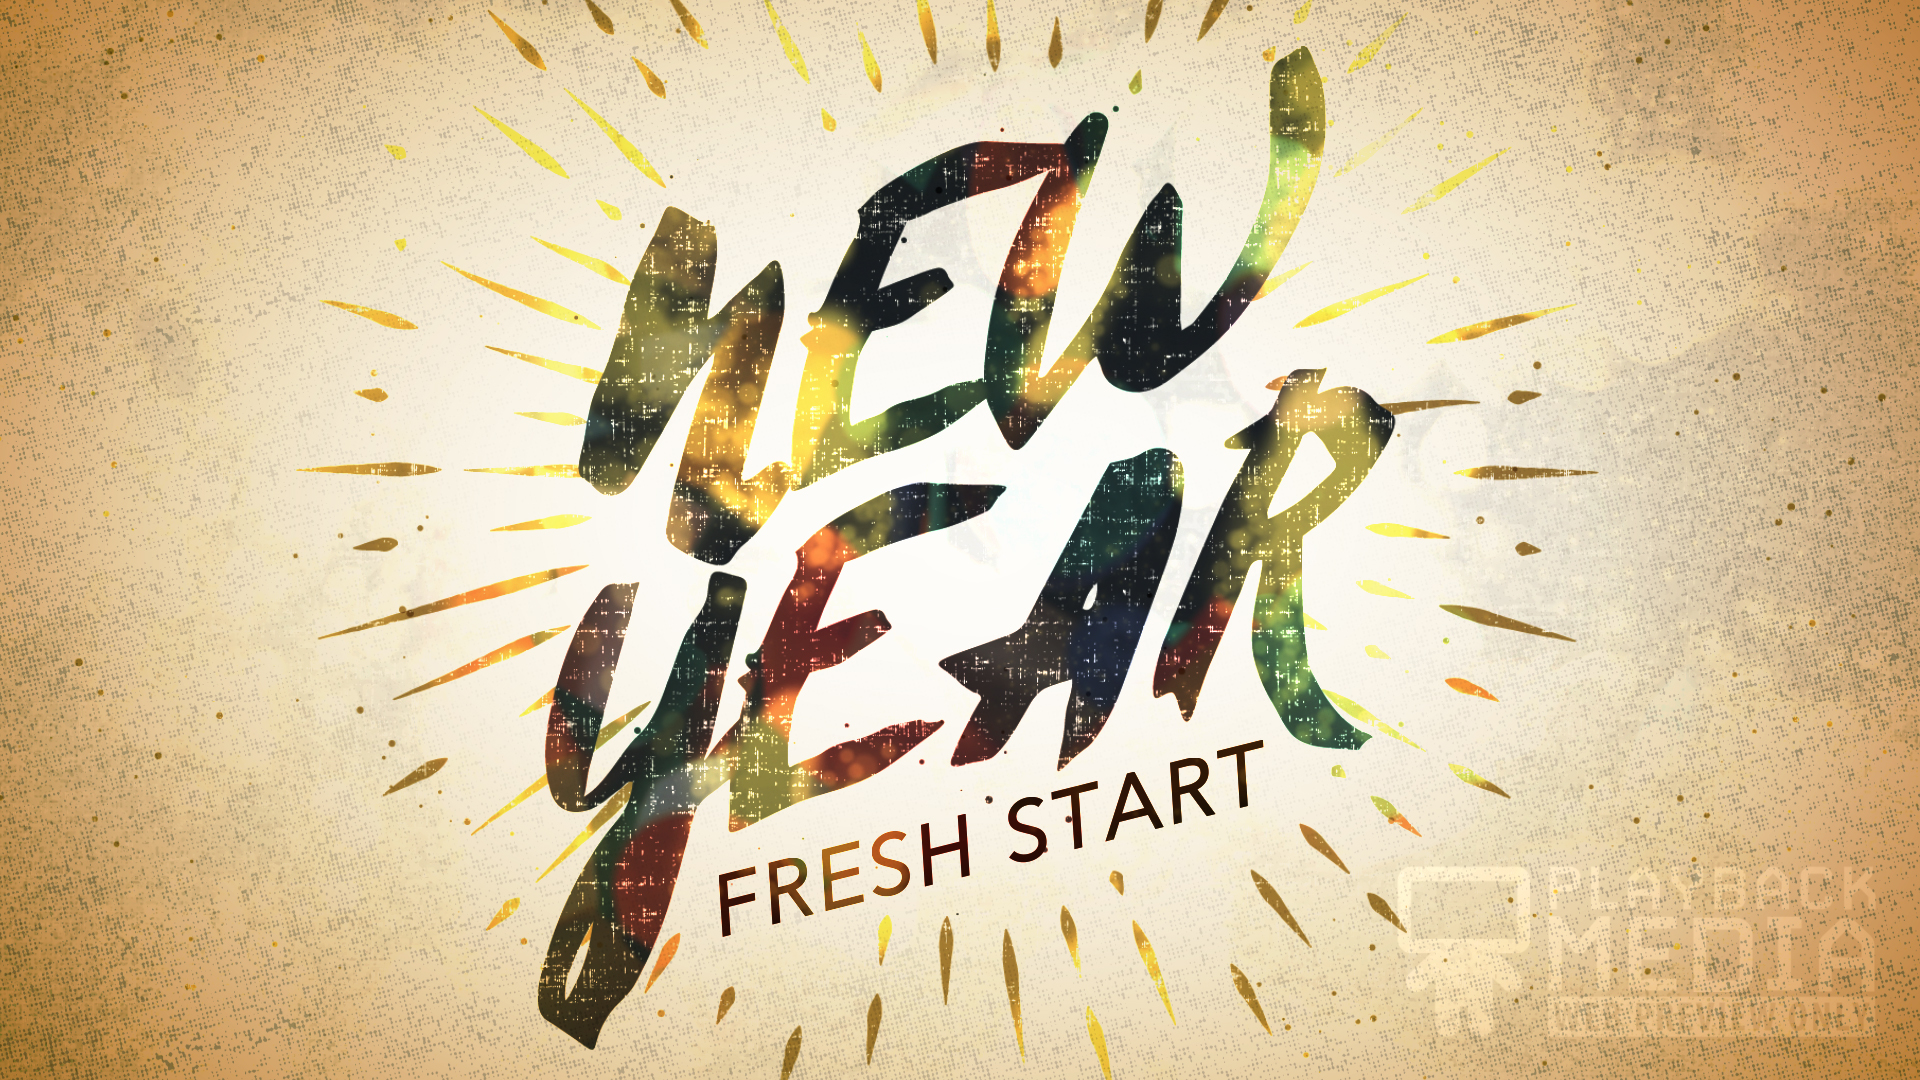 New Year Fresh Start Motion 1 Image